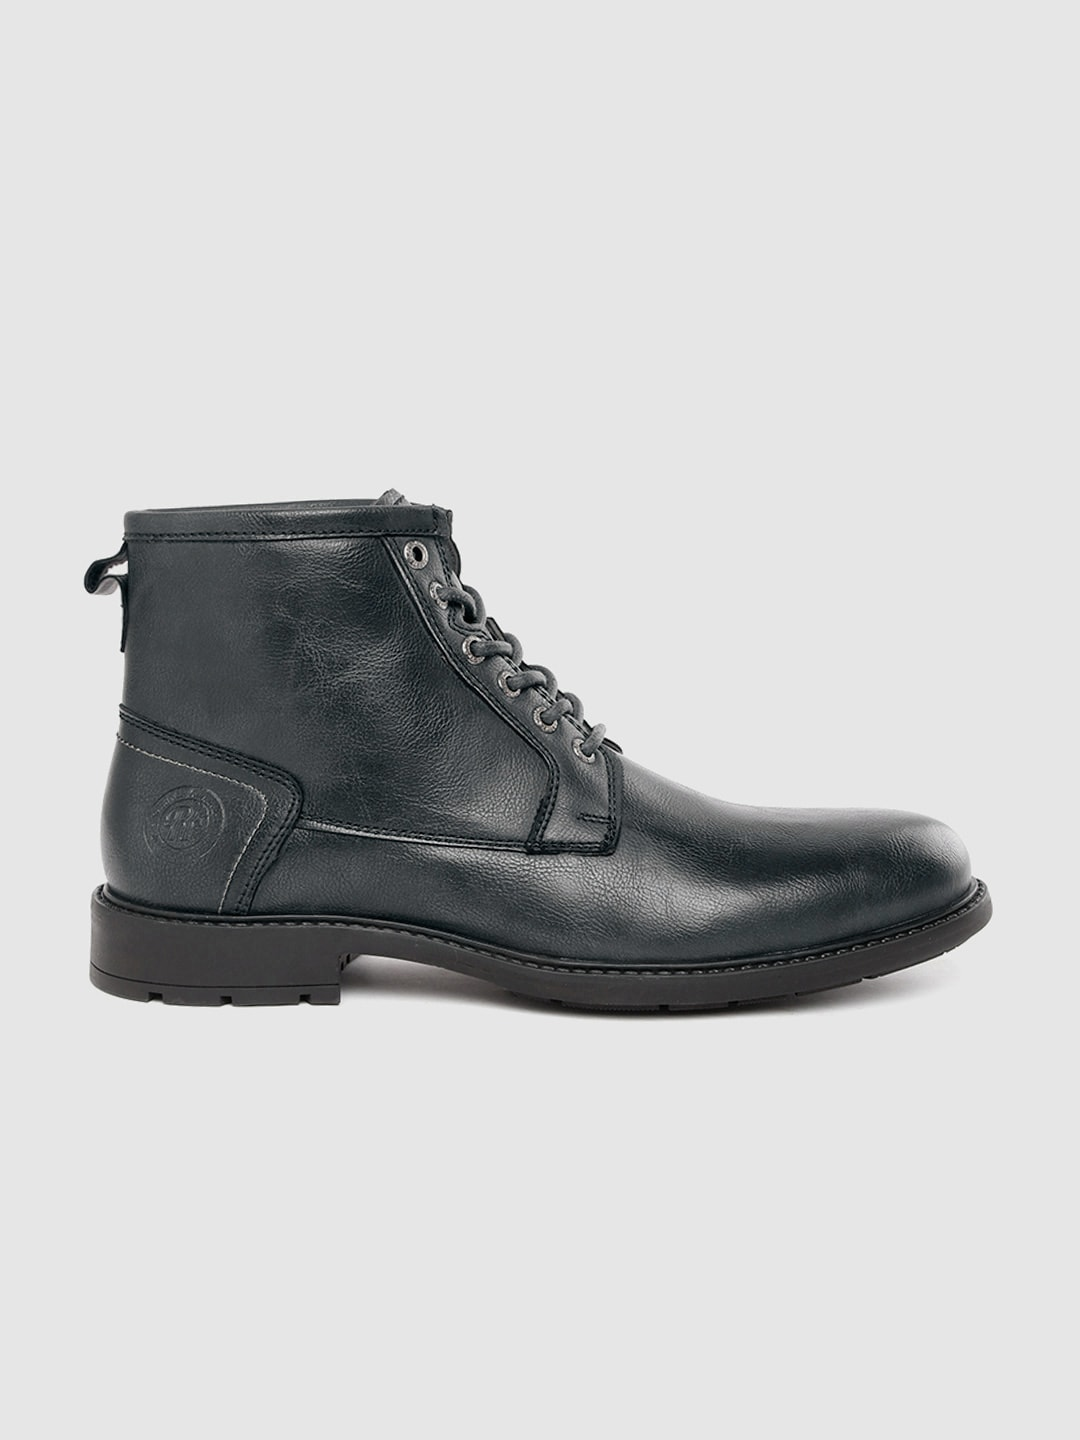 Roadster Men Navy Blue Solid Mid-Top Flat Boots